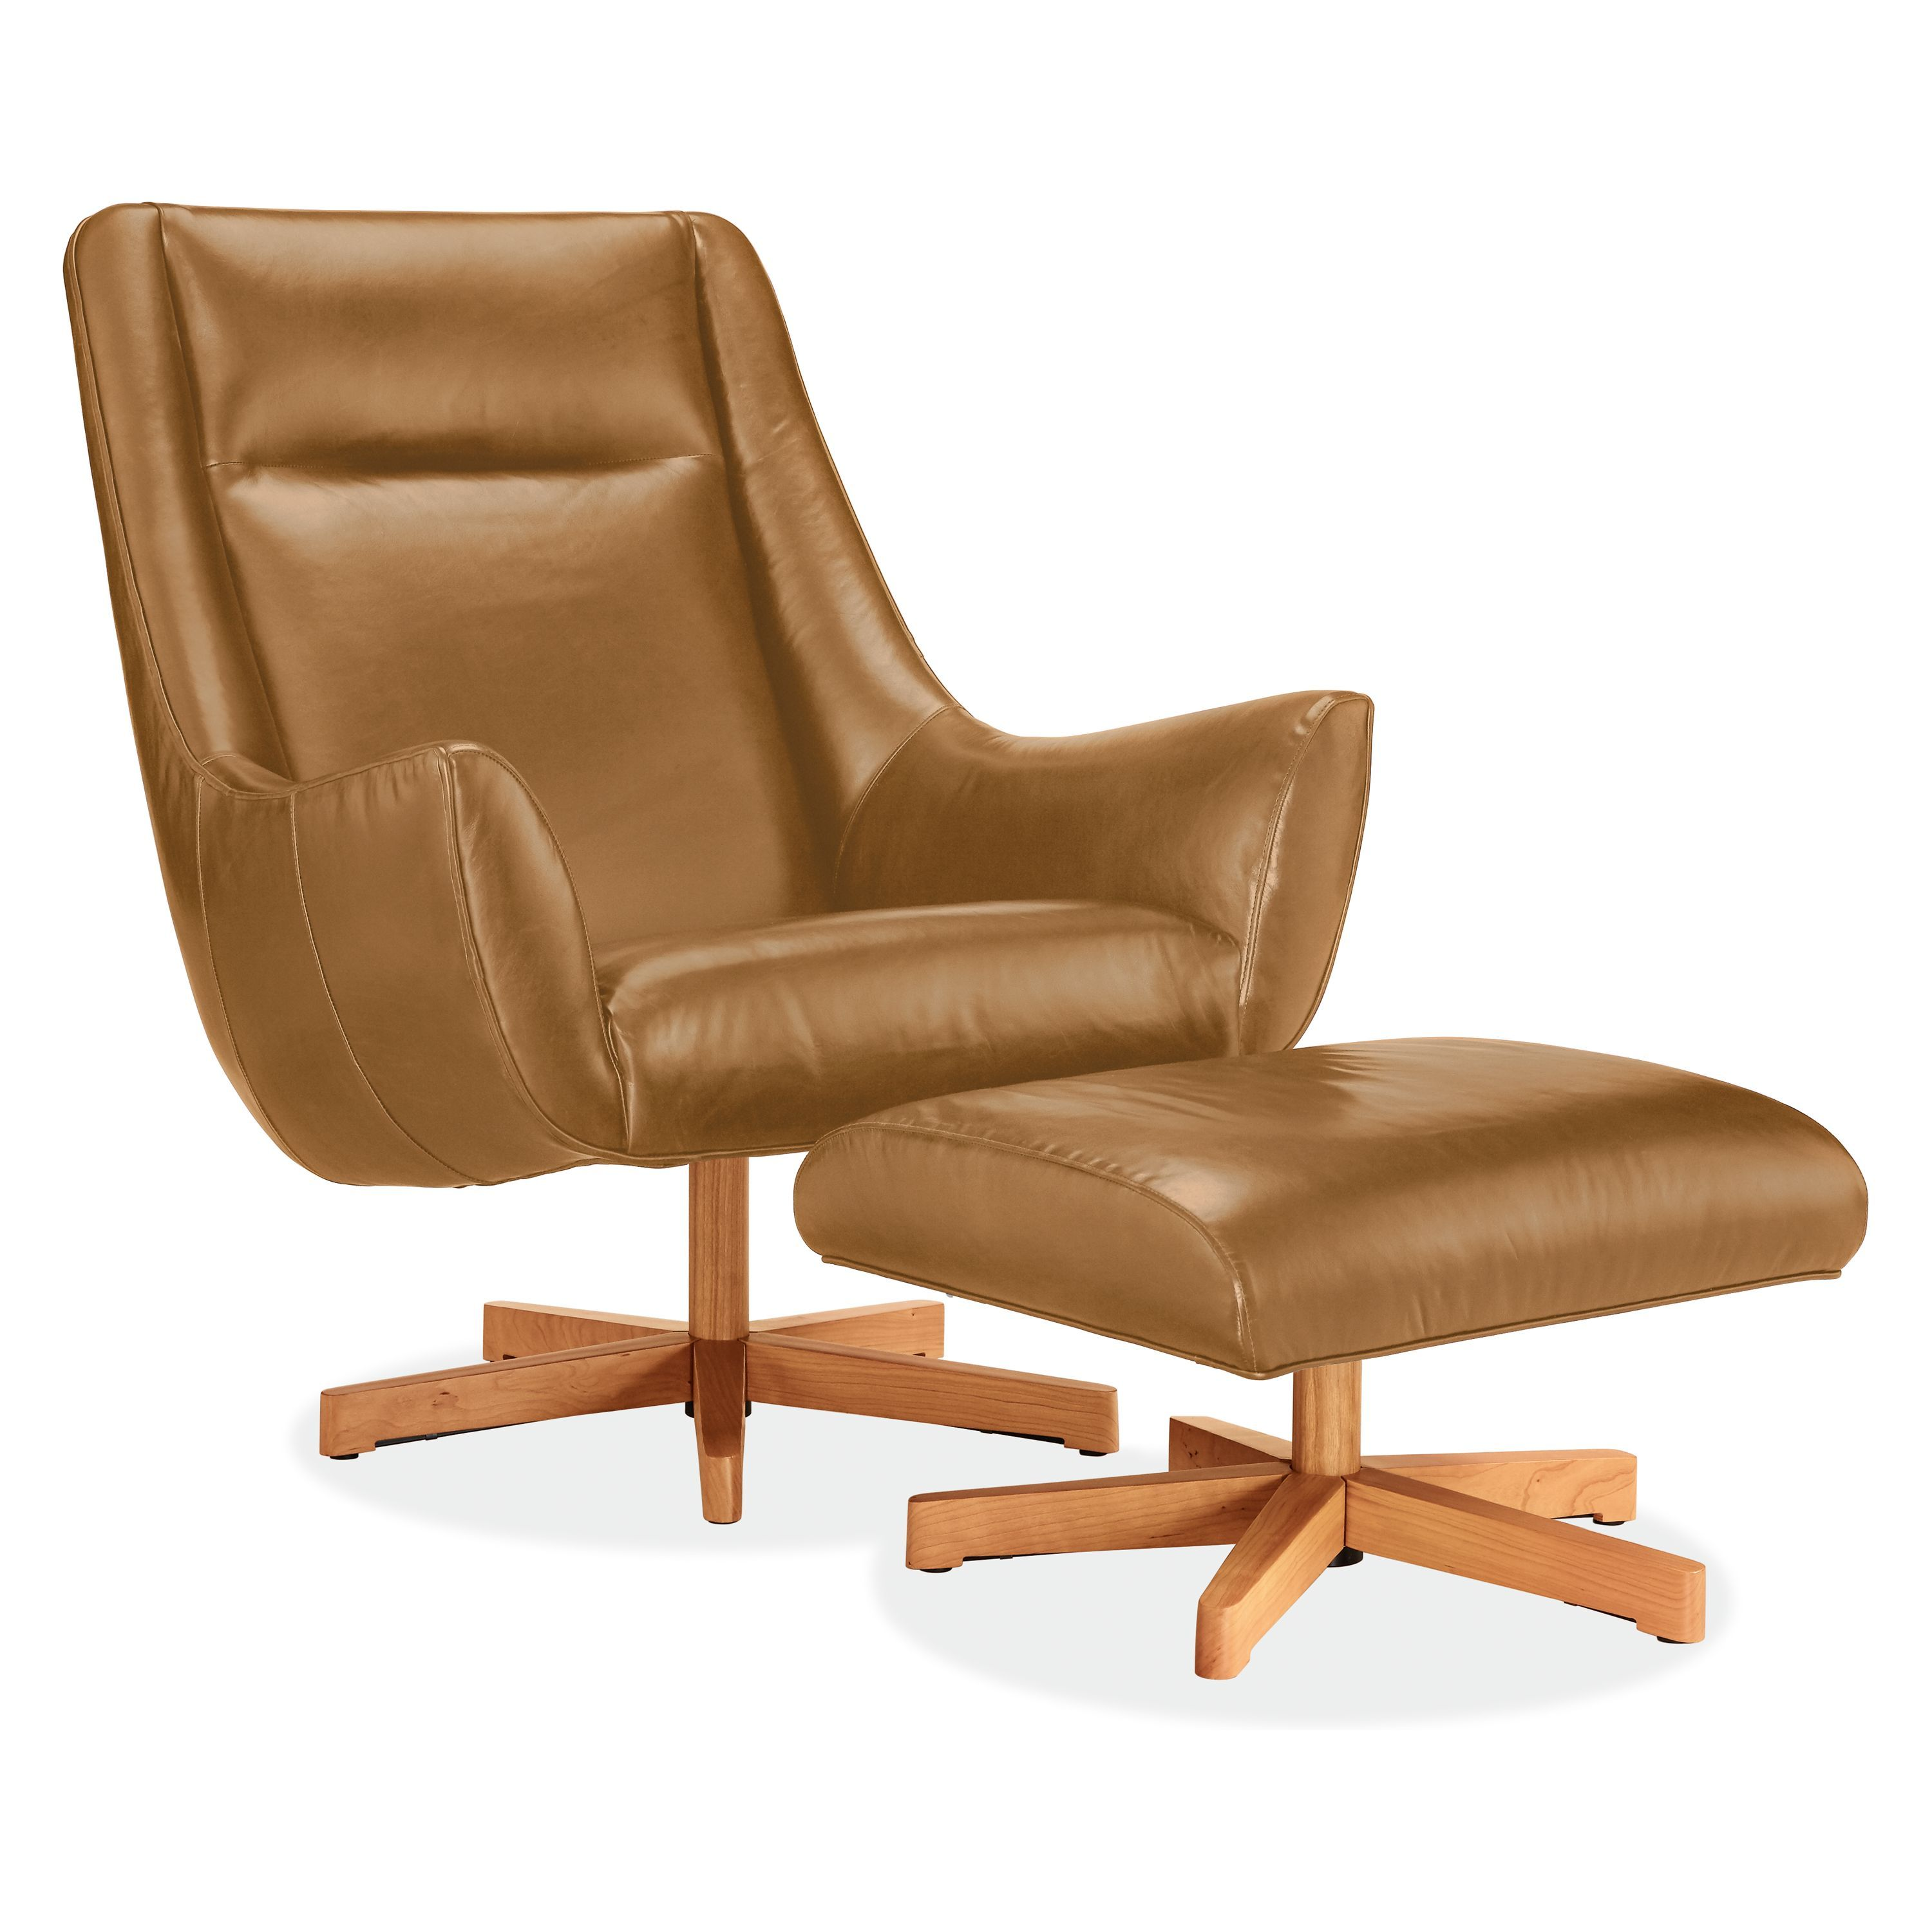 Charles leather swivel chair ottoman with wood base